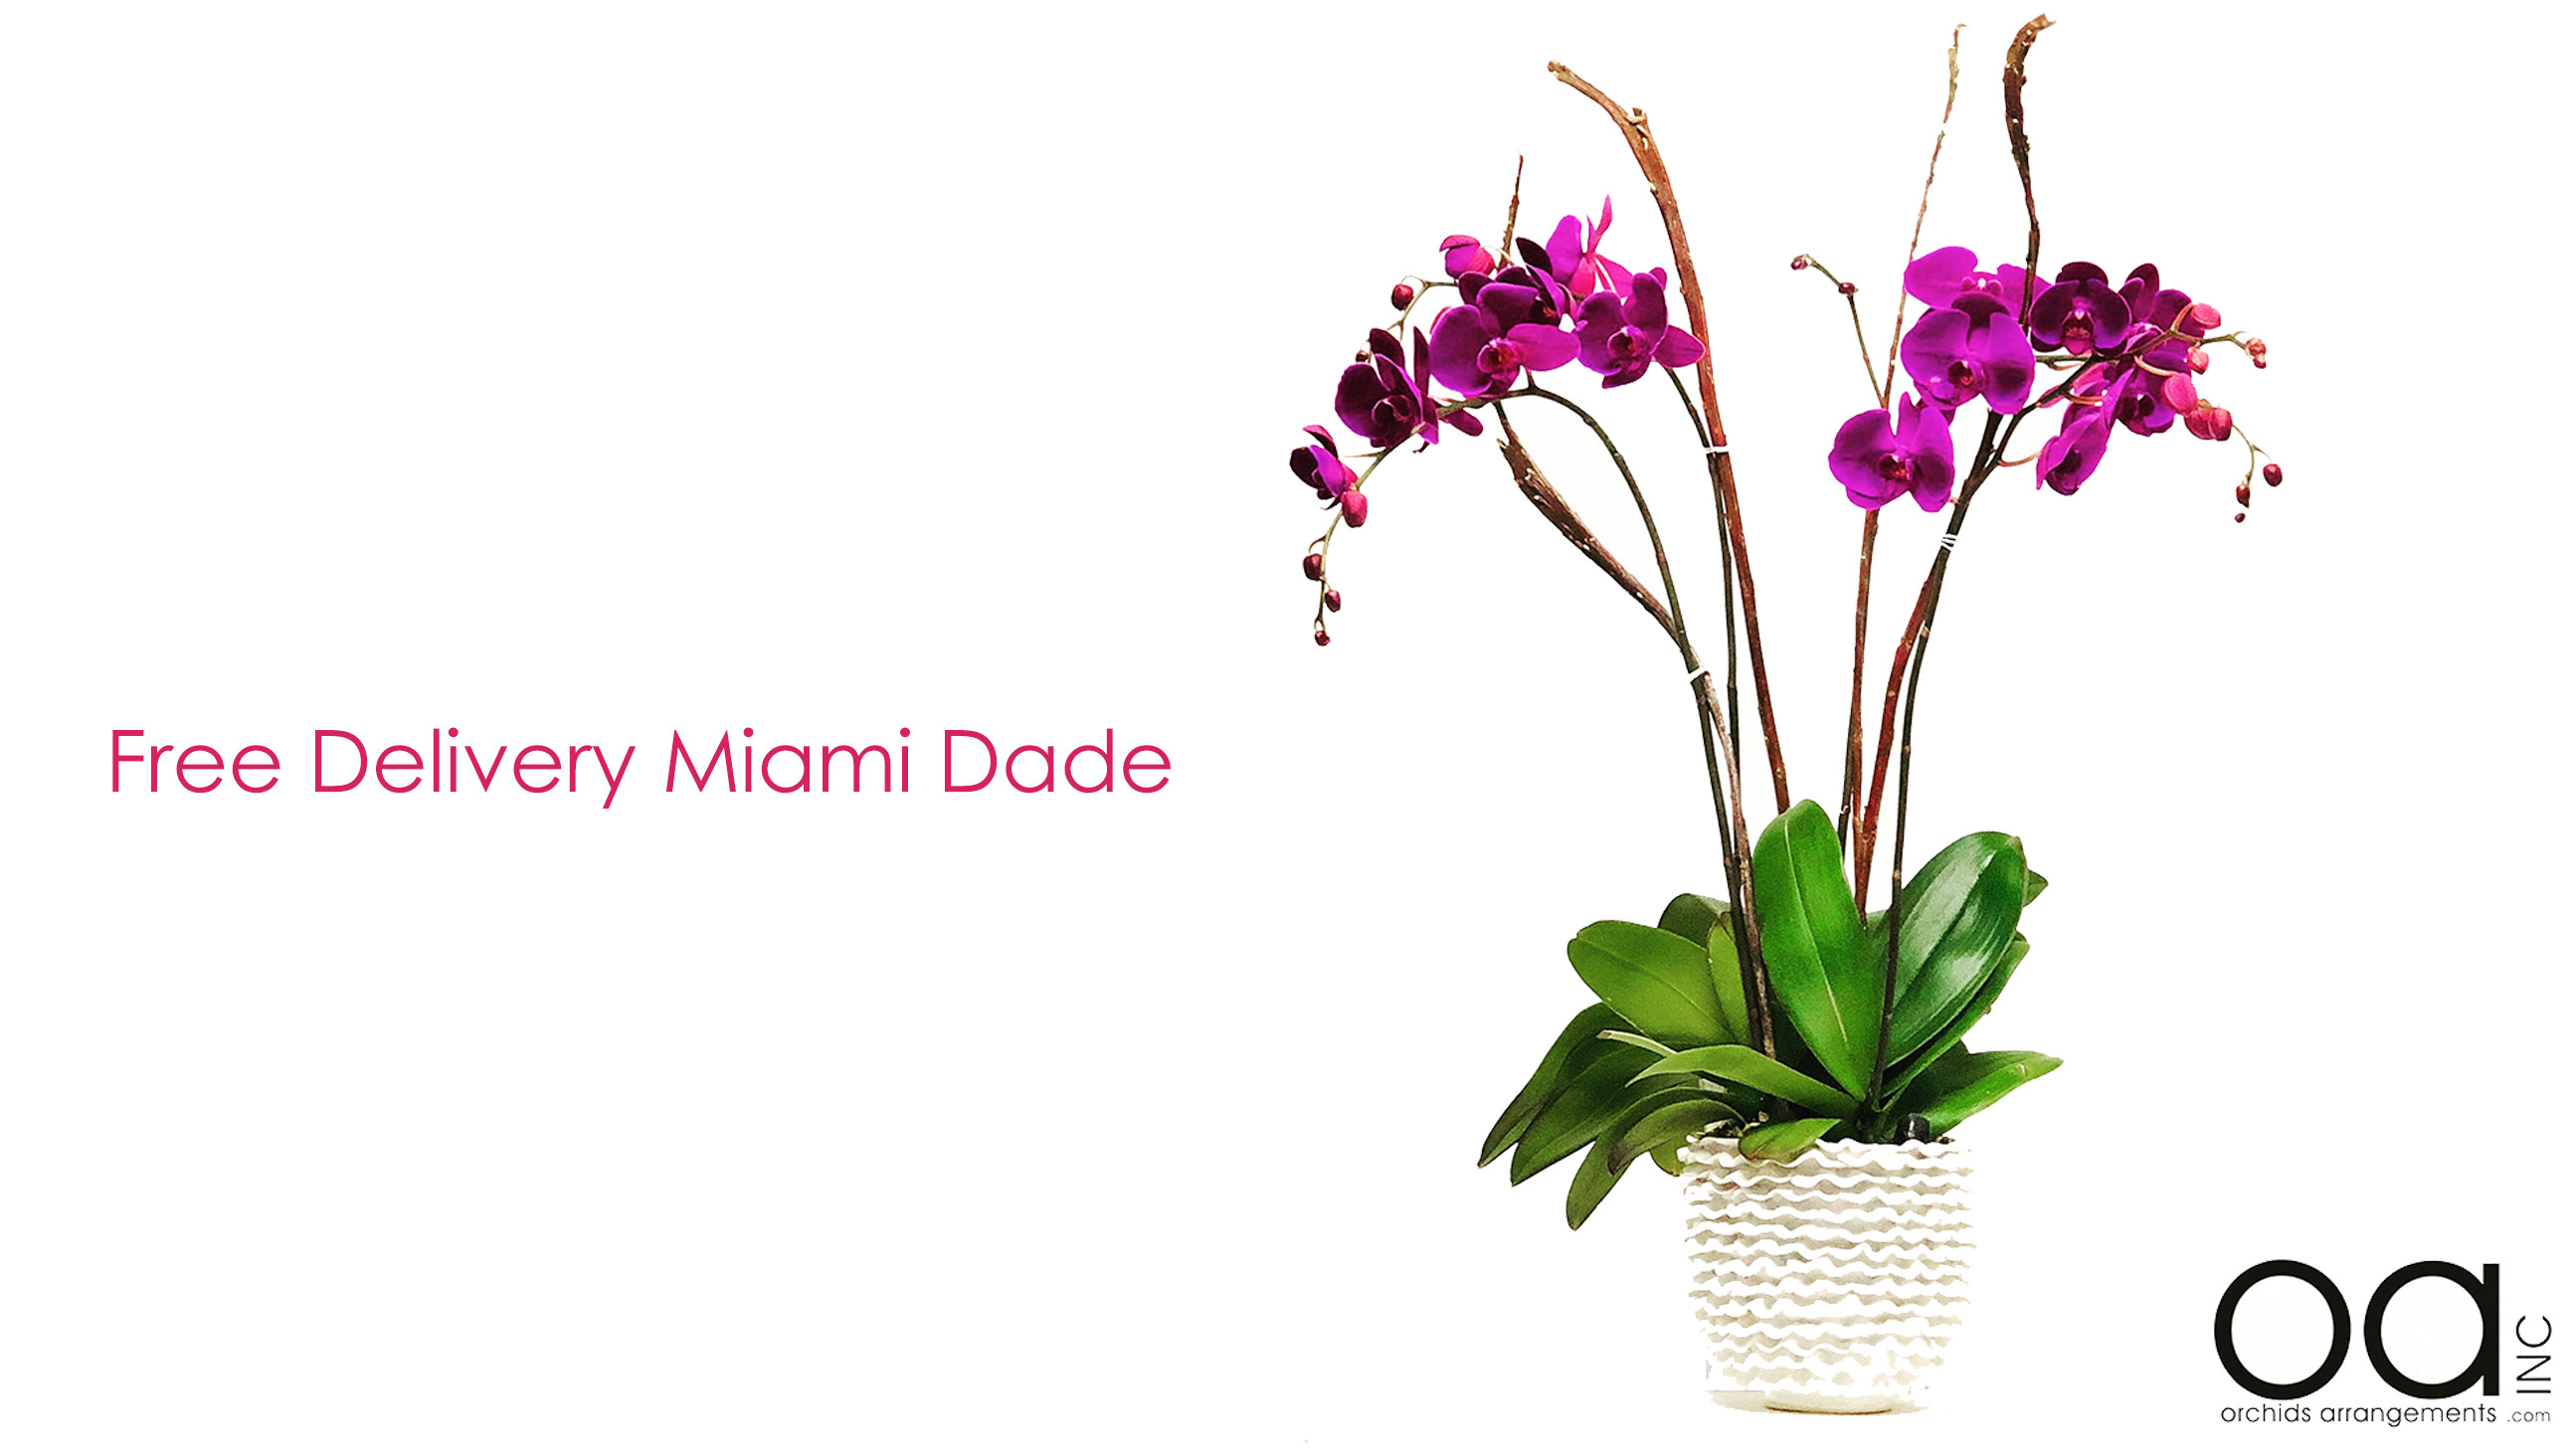 Miami Florist Orchids Arrangements Inc